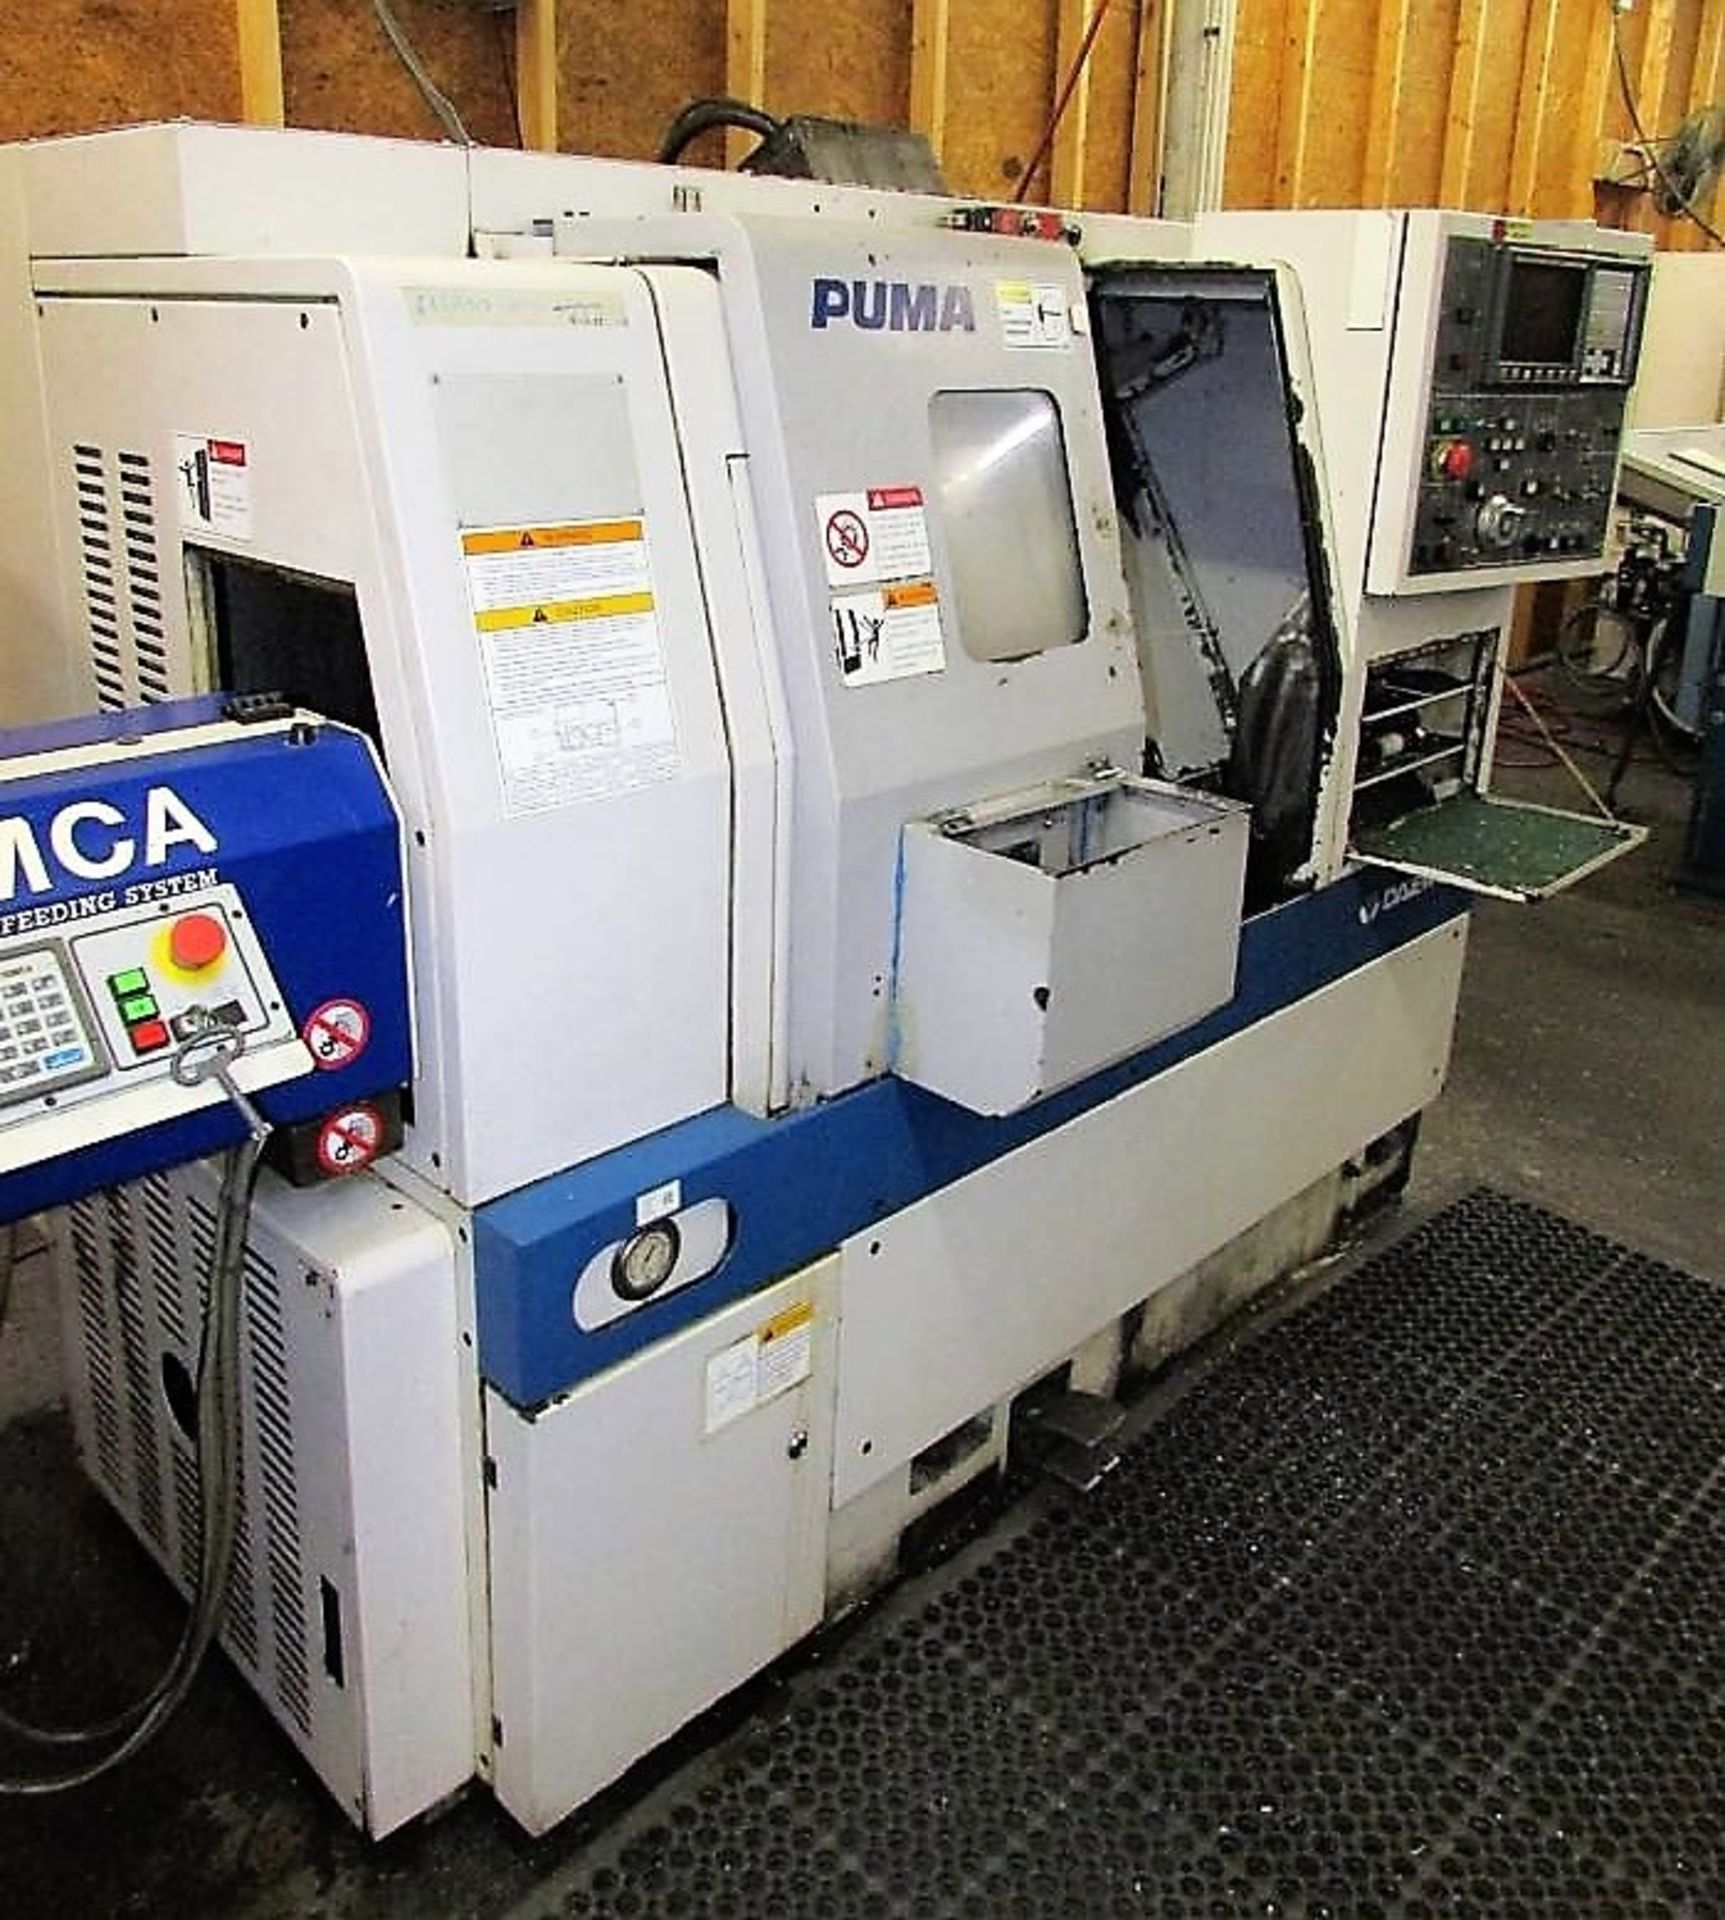 Lot 47 - Daewoo Puma 160GT 2-Axis CNC Gang Turn Turning Center Lathe, S/N PL160-0220, New 2002